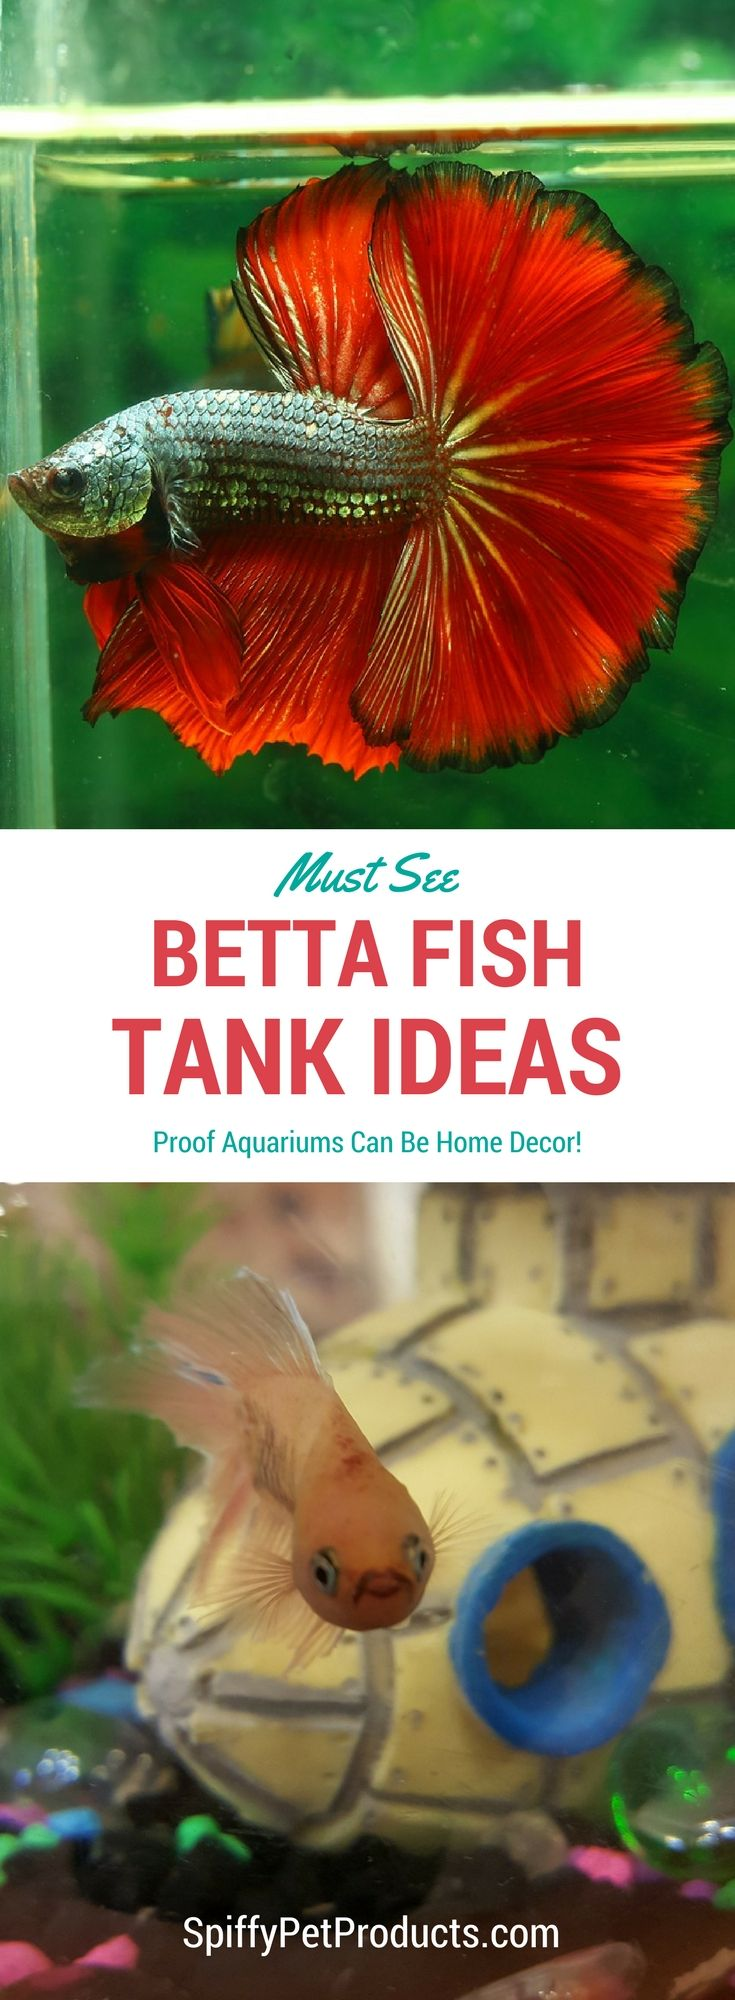 6996 best home decor images on pinterest home ideas my for Cat proof fish tank